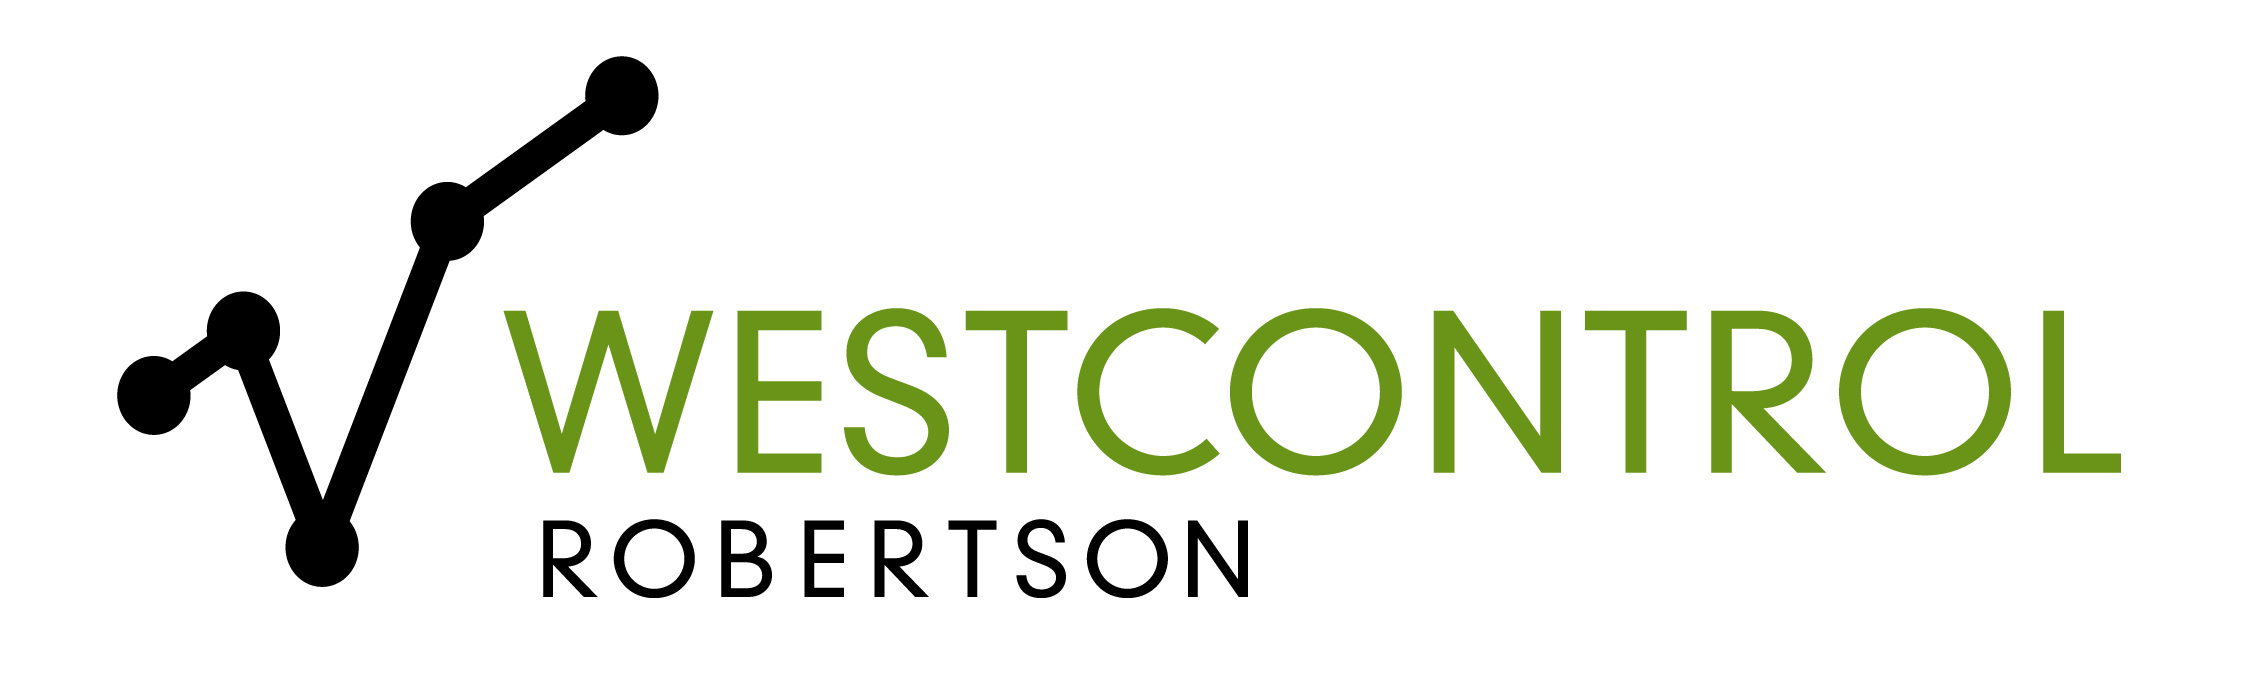 Westcontrol Robertson As